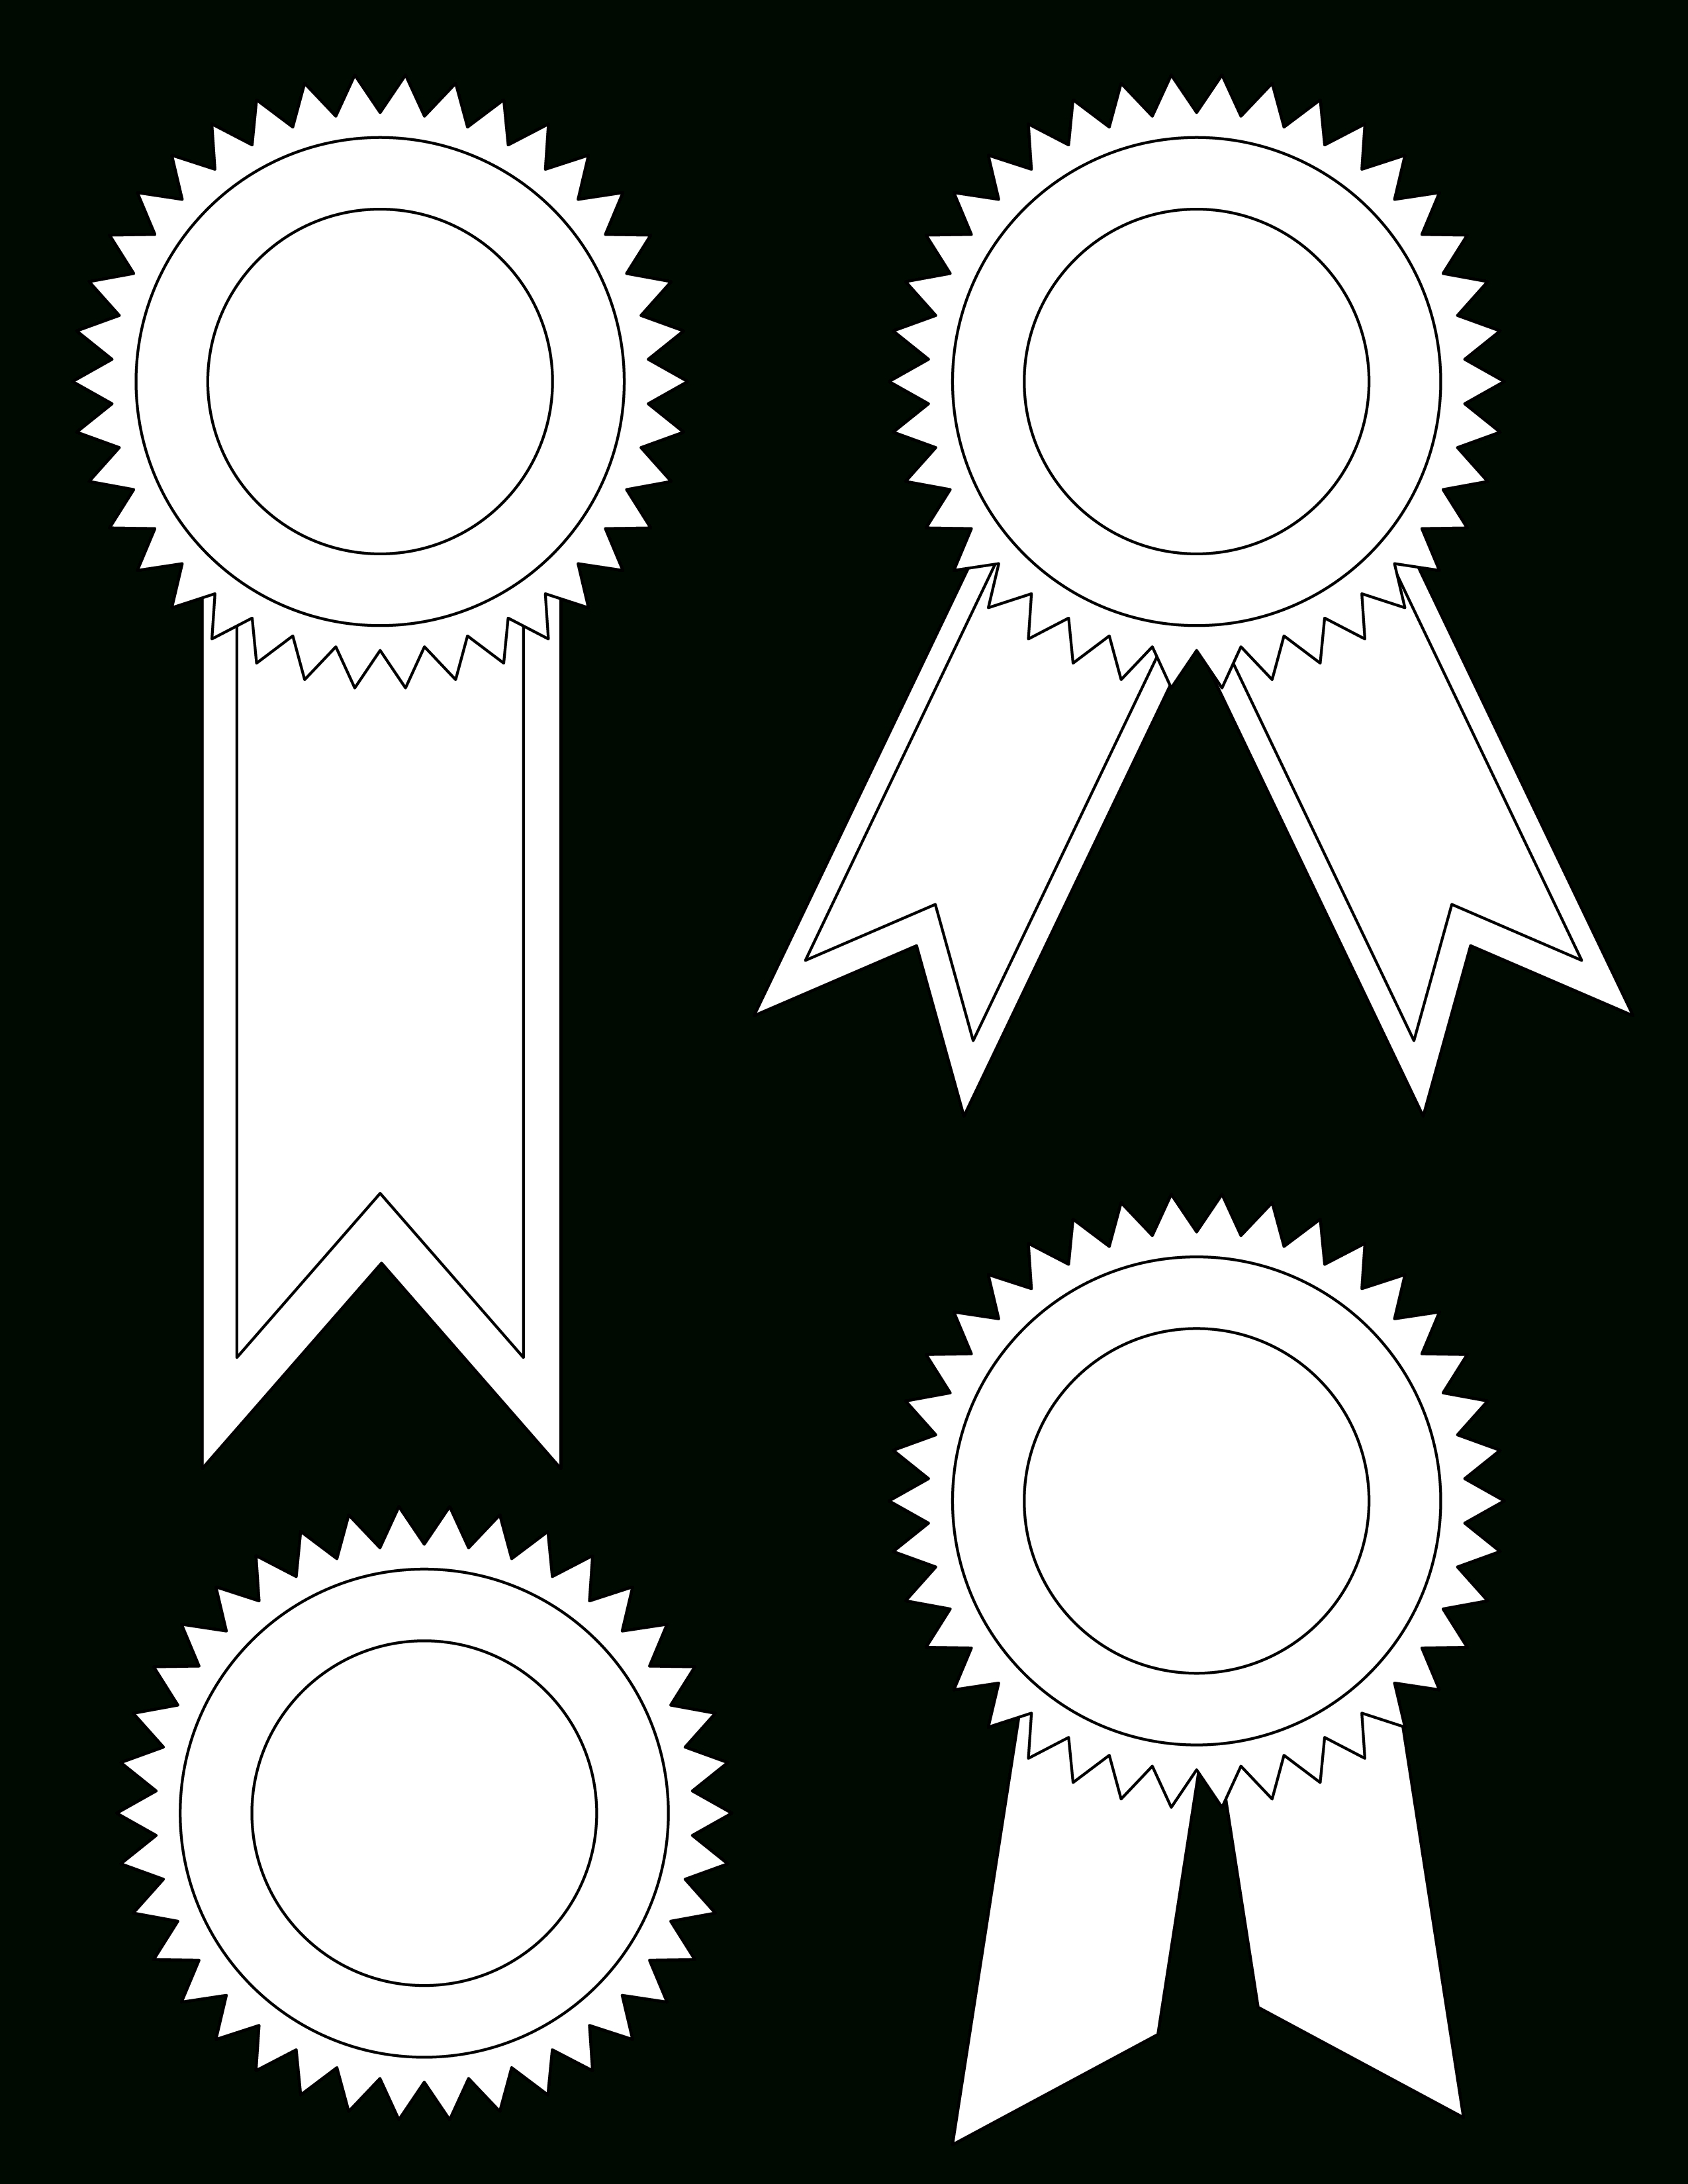 Free Ribbon Template, Download Free Clip Art, Free Clip Art On - Free Printable Ribbons